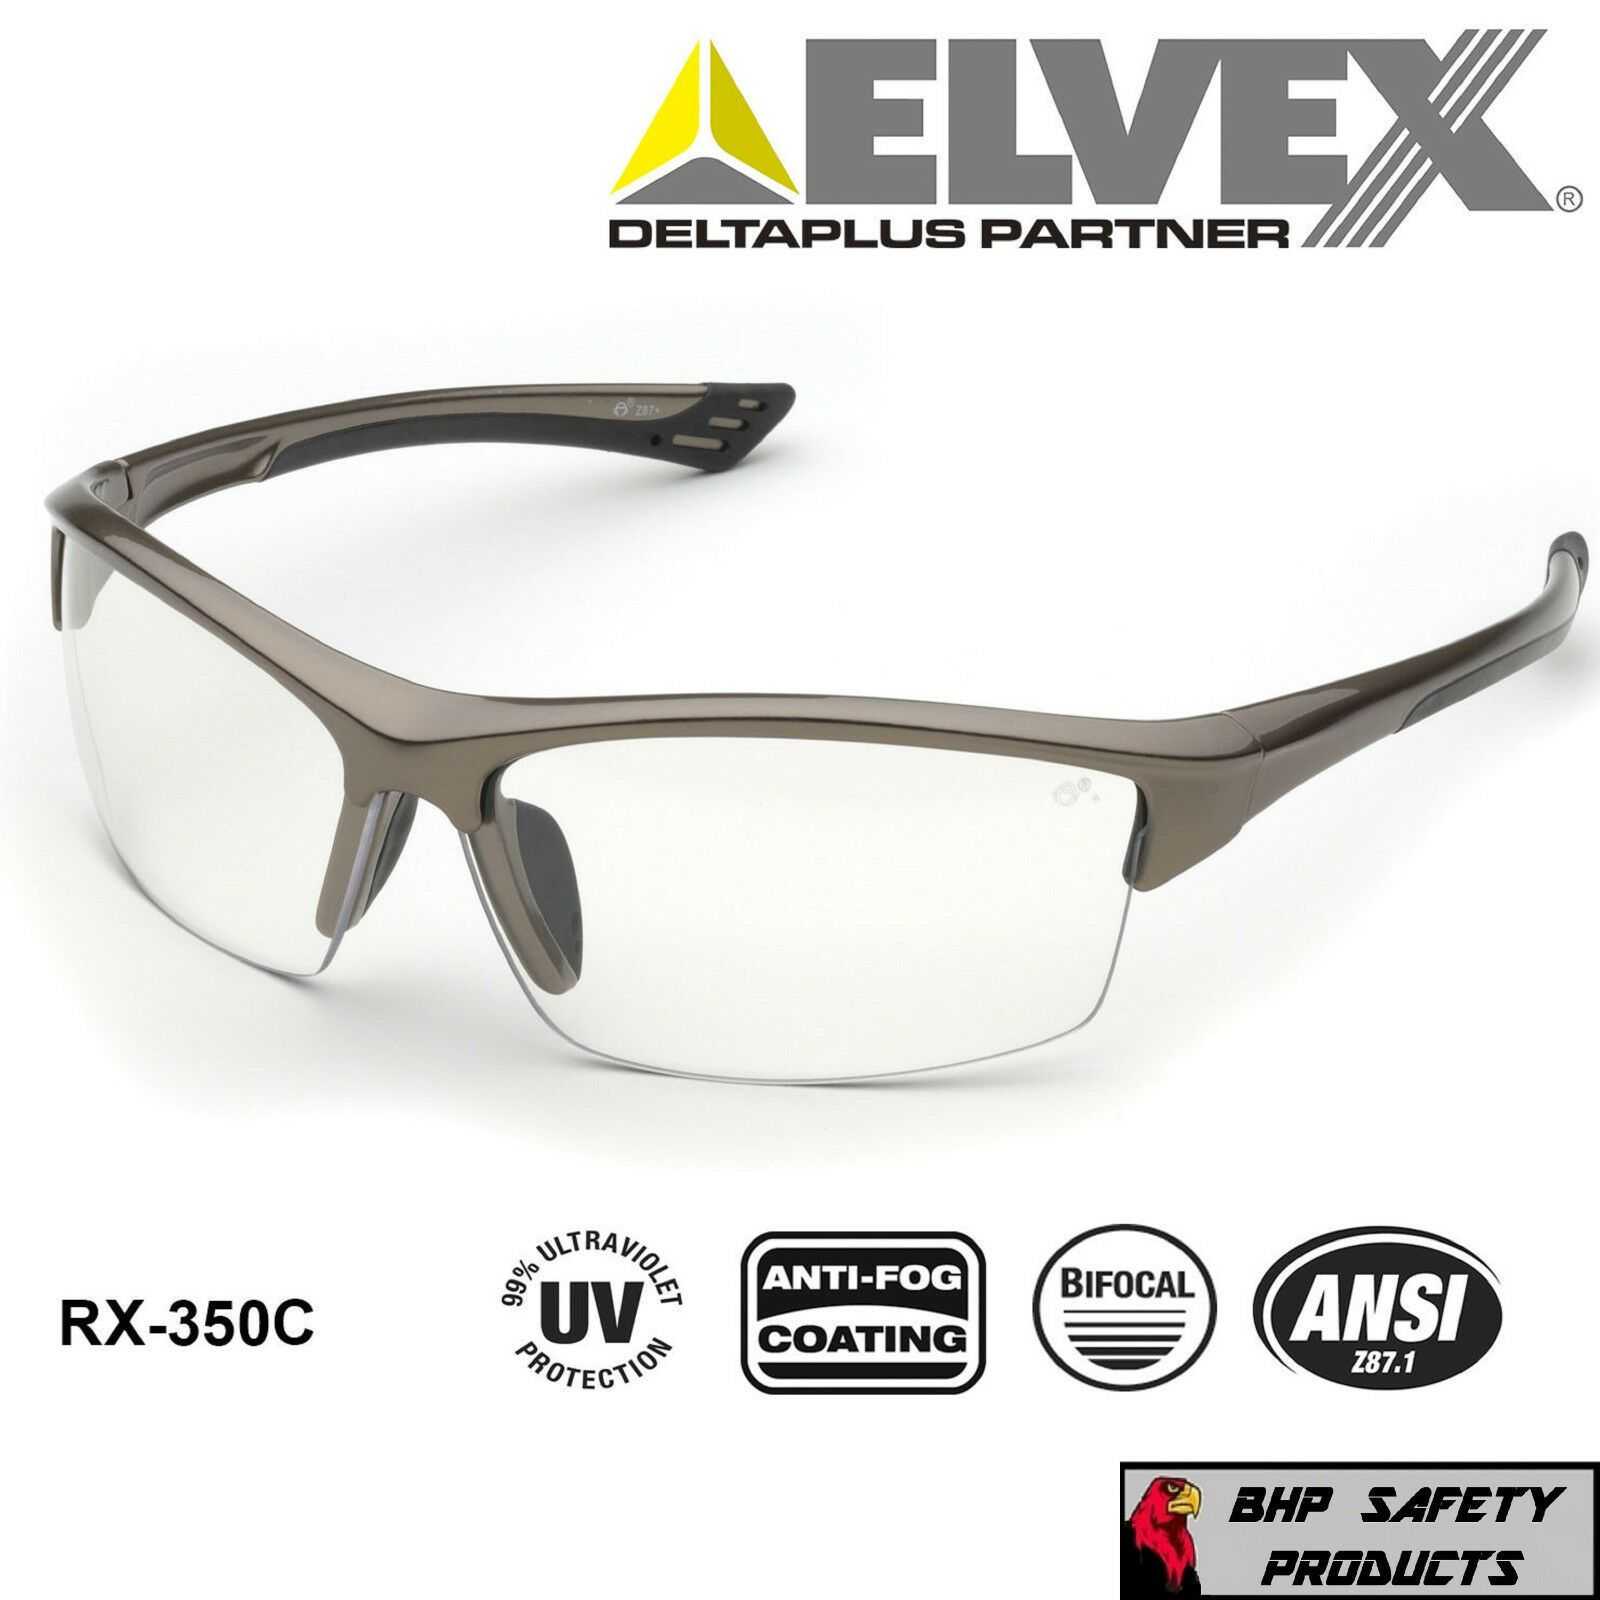 ELVEX SONOMA RX350C BIFOCAL READER SAFETY GLASSES CLEAR